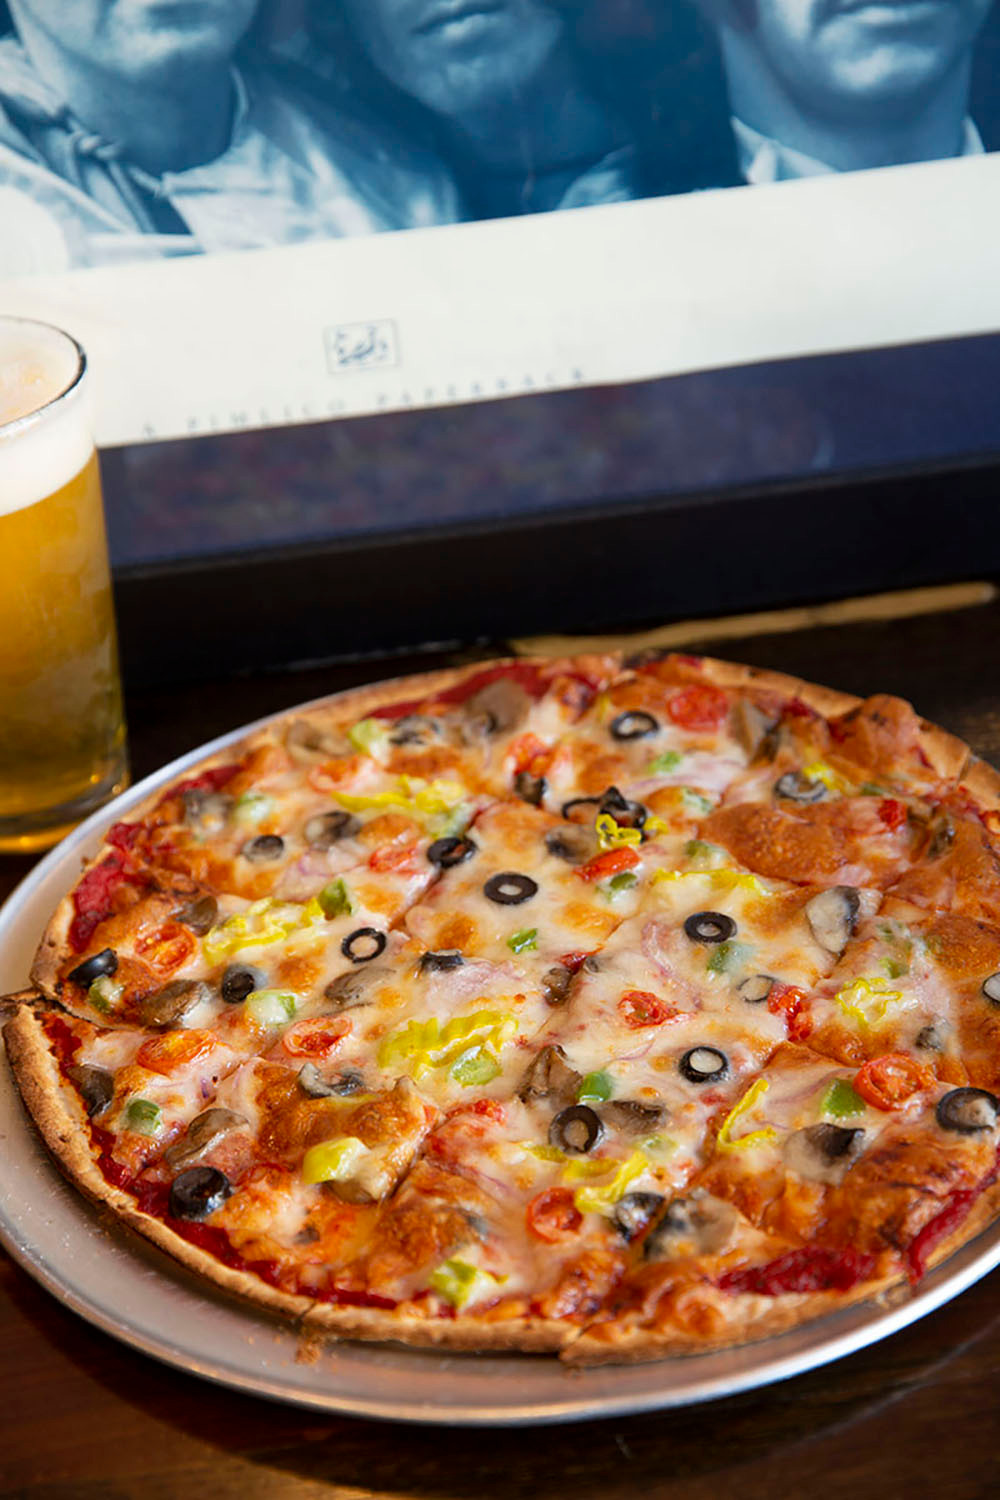 Large thin crust pizza loaded with olives peppers and other veggies with a glass of beer at The Brick Bistro & Brew